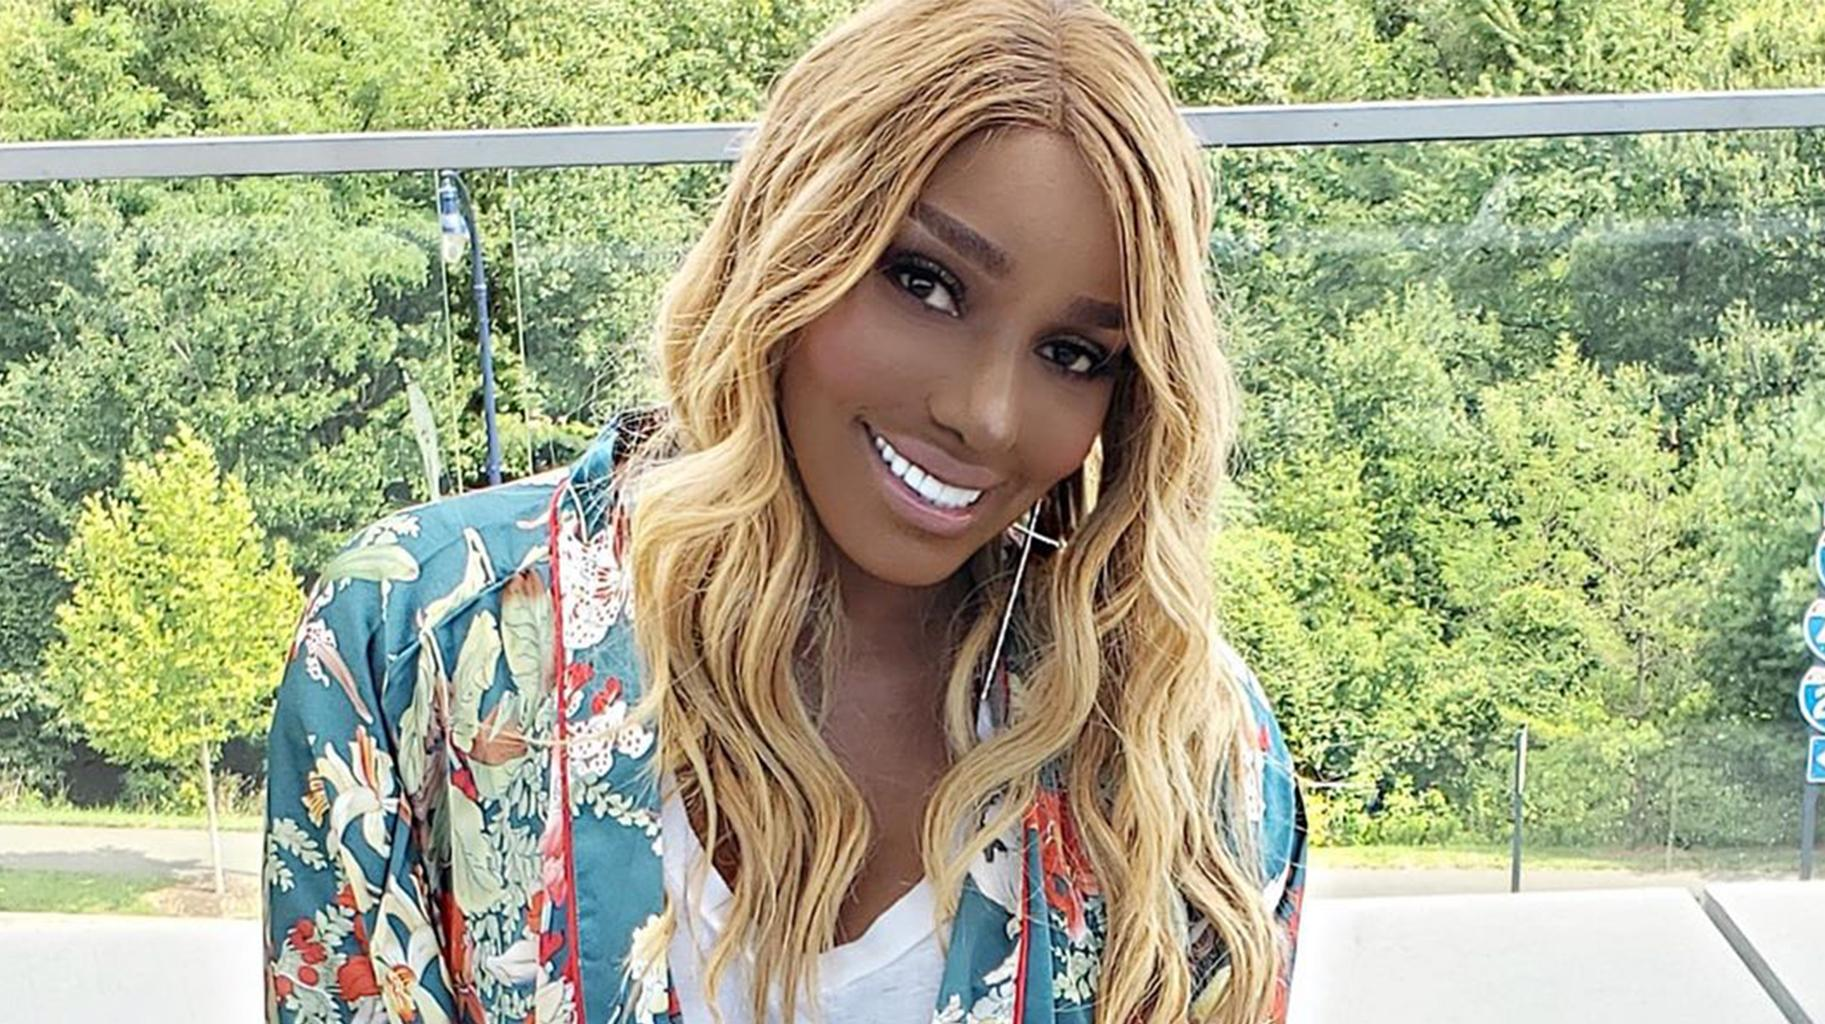 Nene Leakes Says She's Not Interested In Kenya Moore's Marriage And Doubles Down On Cynthia Bailey Having 'Another Side' To Her